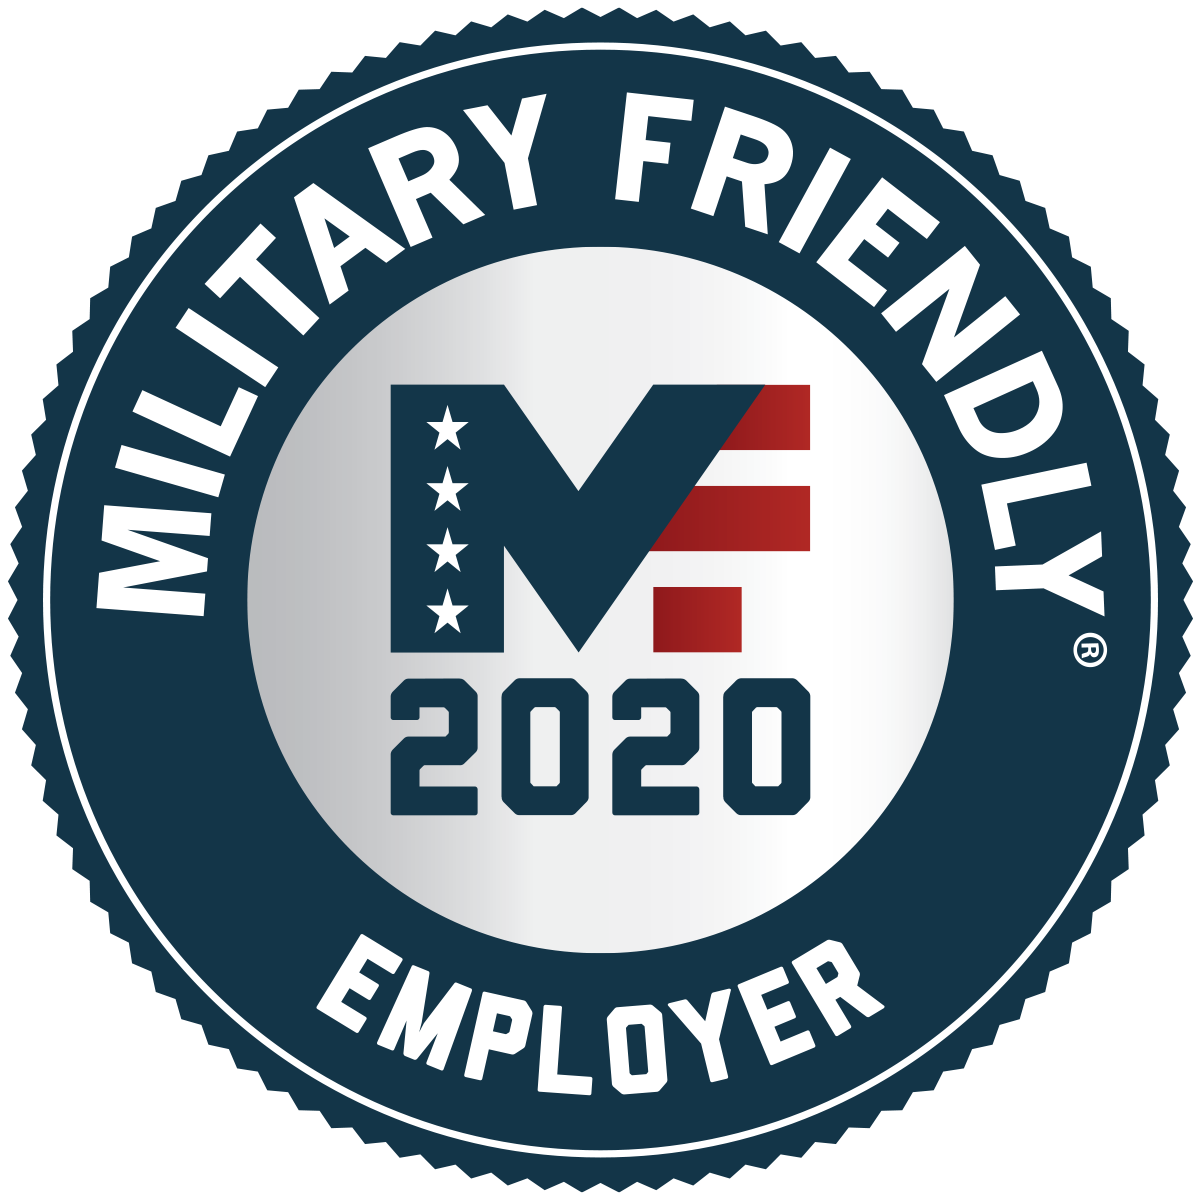 2020 Military Friendly Employer